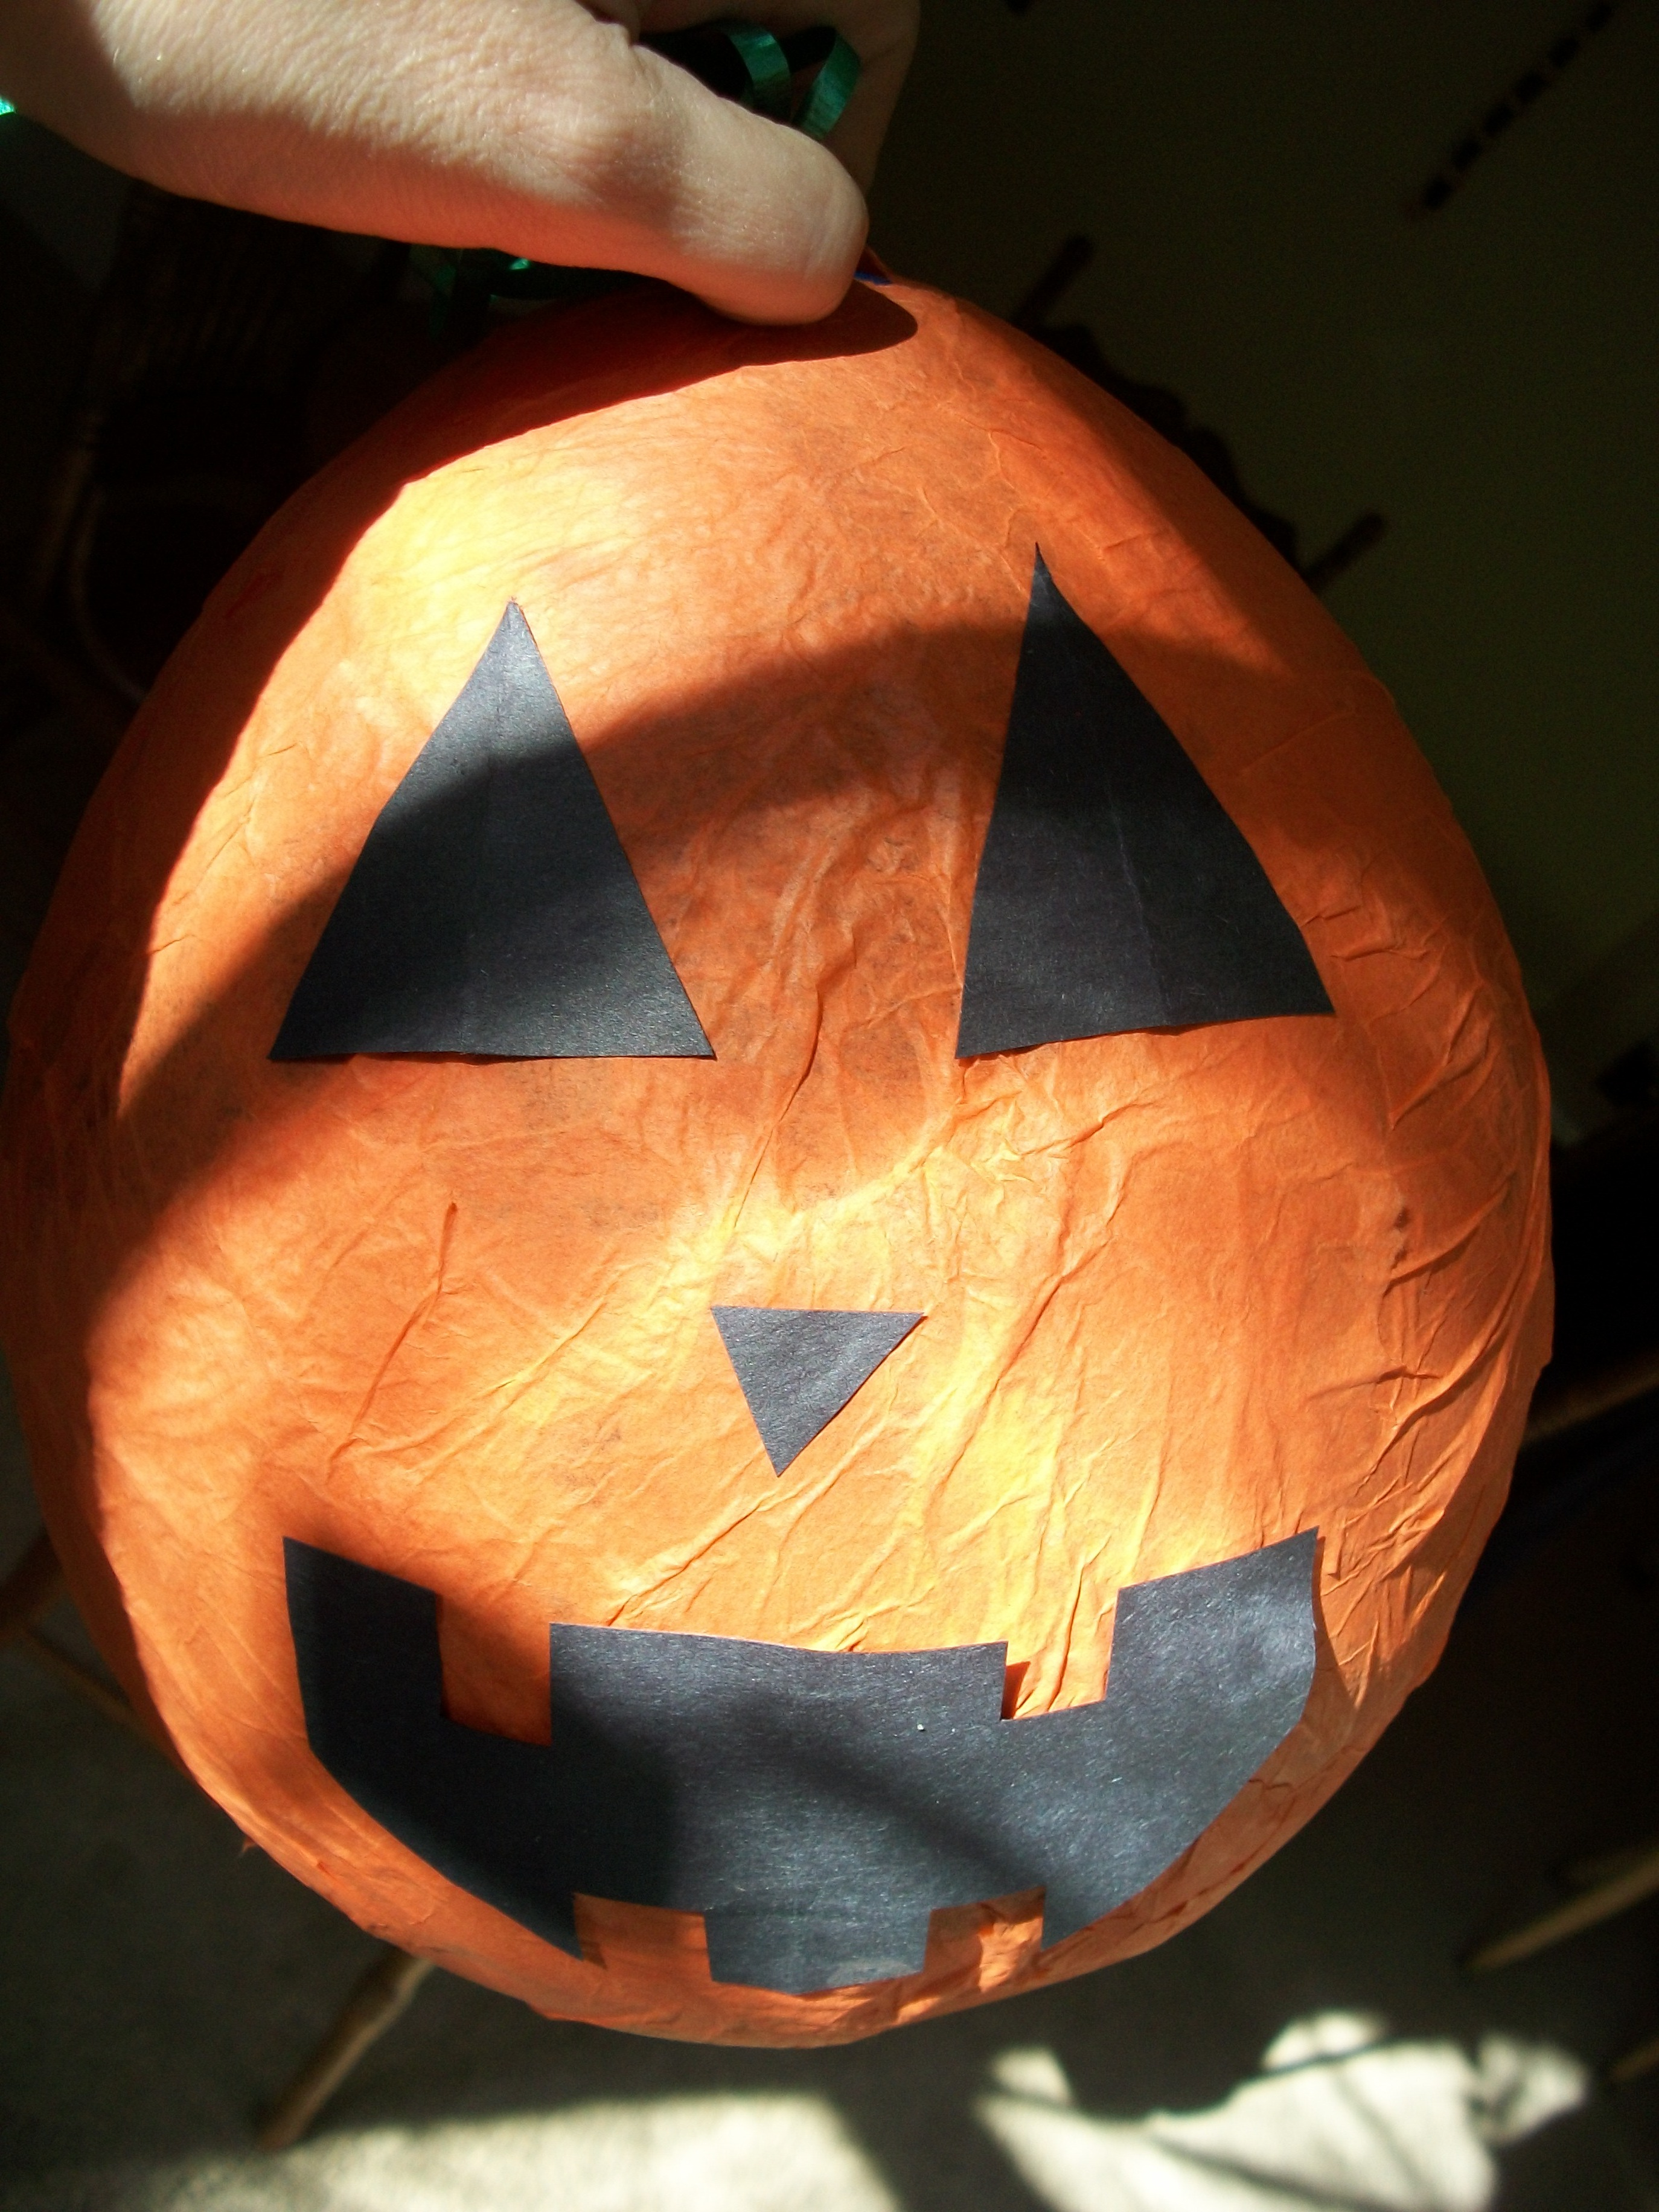 Cut The Jack O Lantern Face Out Of Construction Paper And Glue To Your Pumpkin